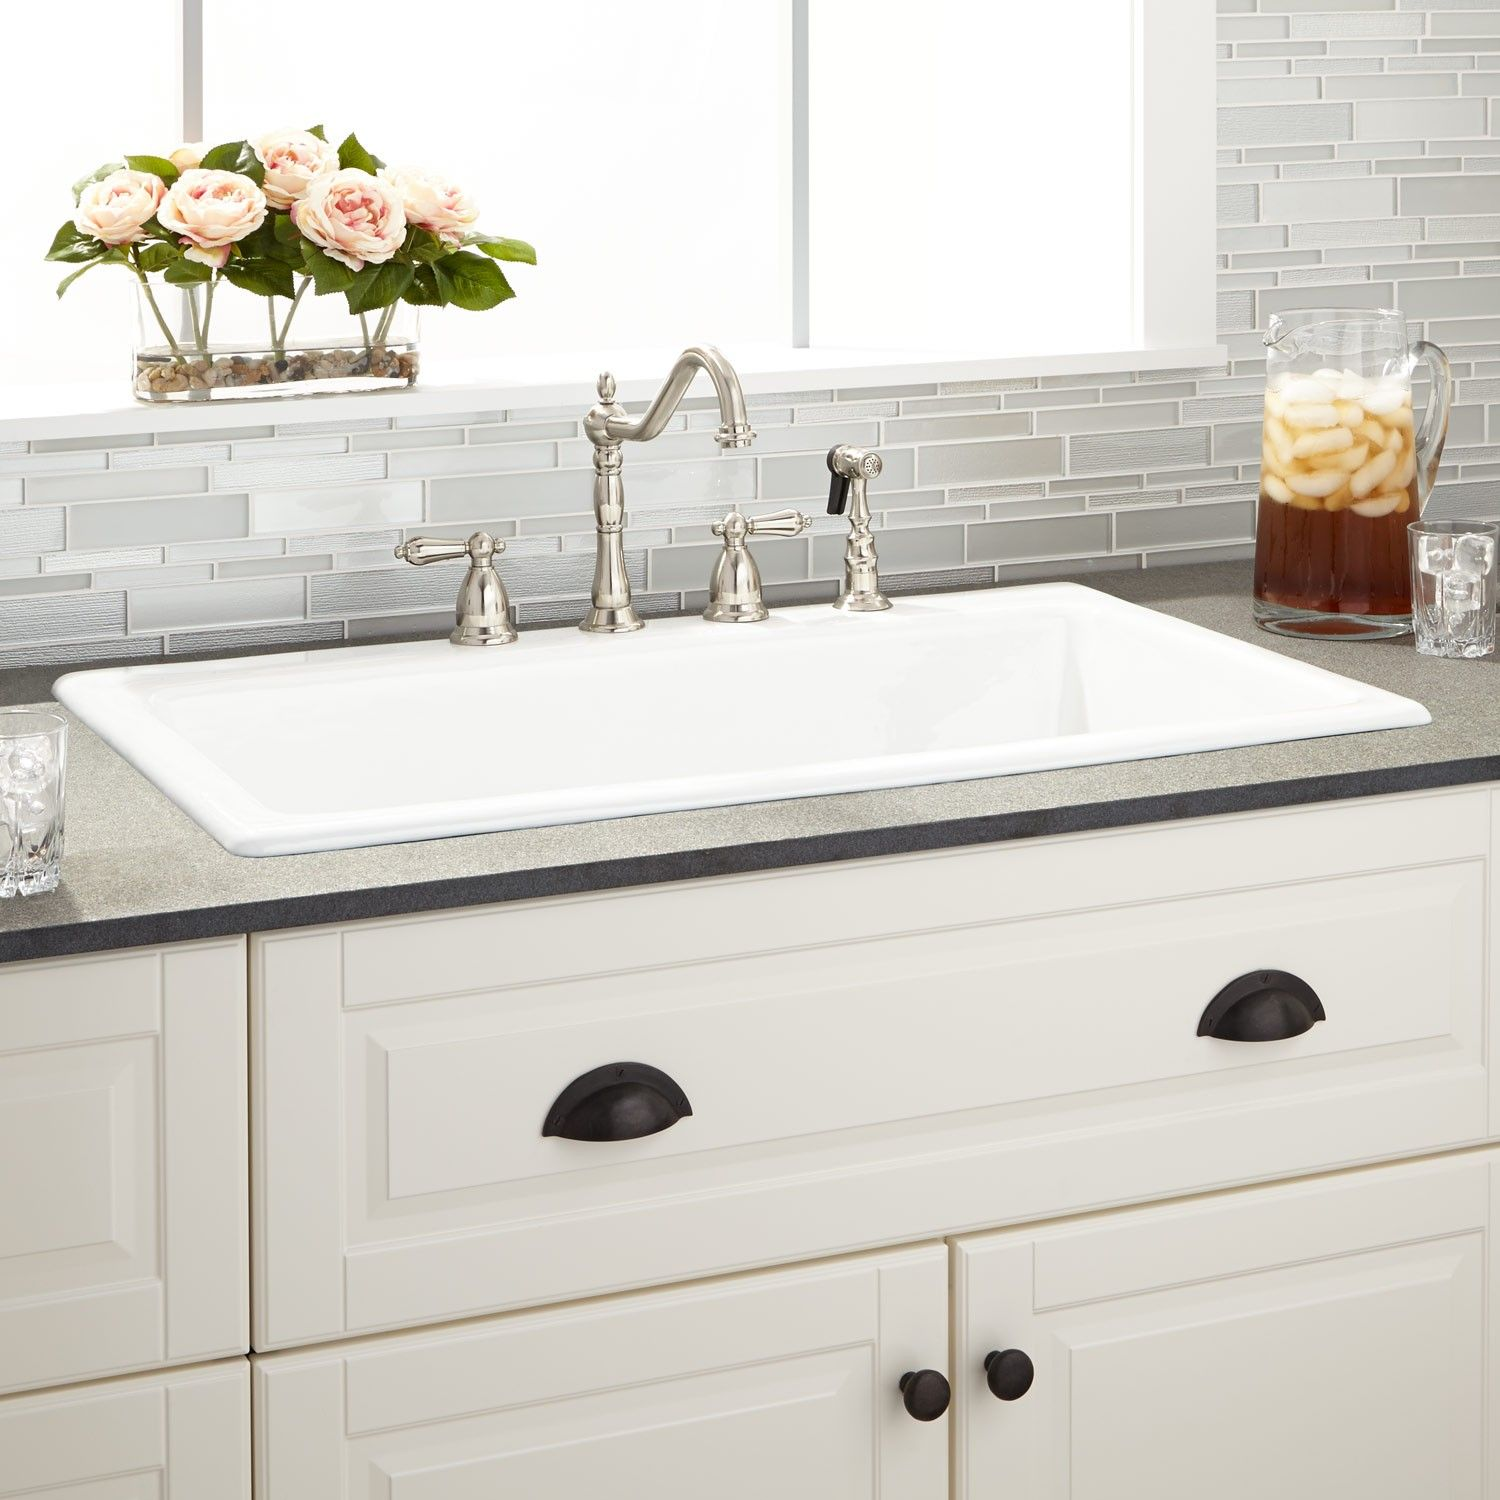 White Kitchen Taps: Best 25+ Cast Iron Kitchen Sinks Ideas On Pinterest